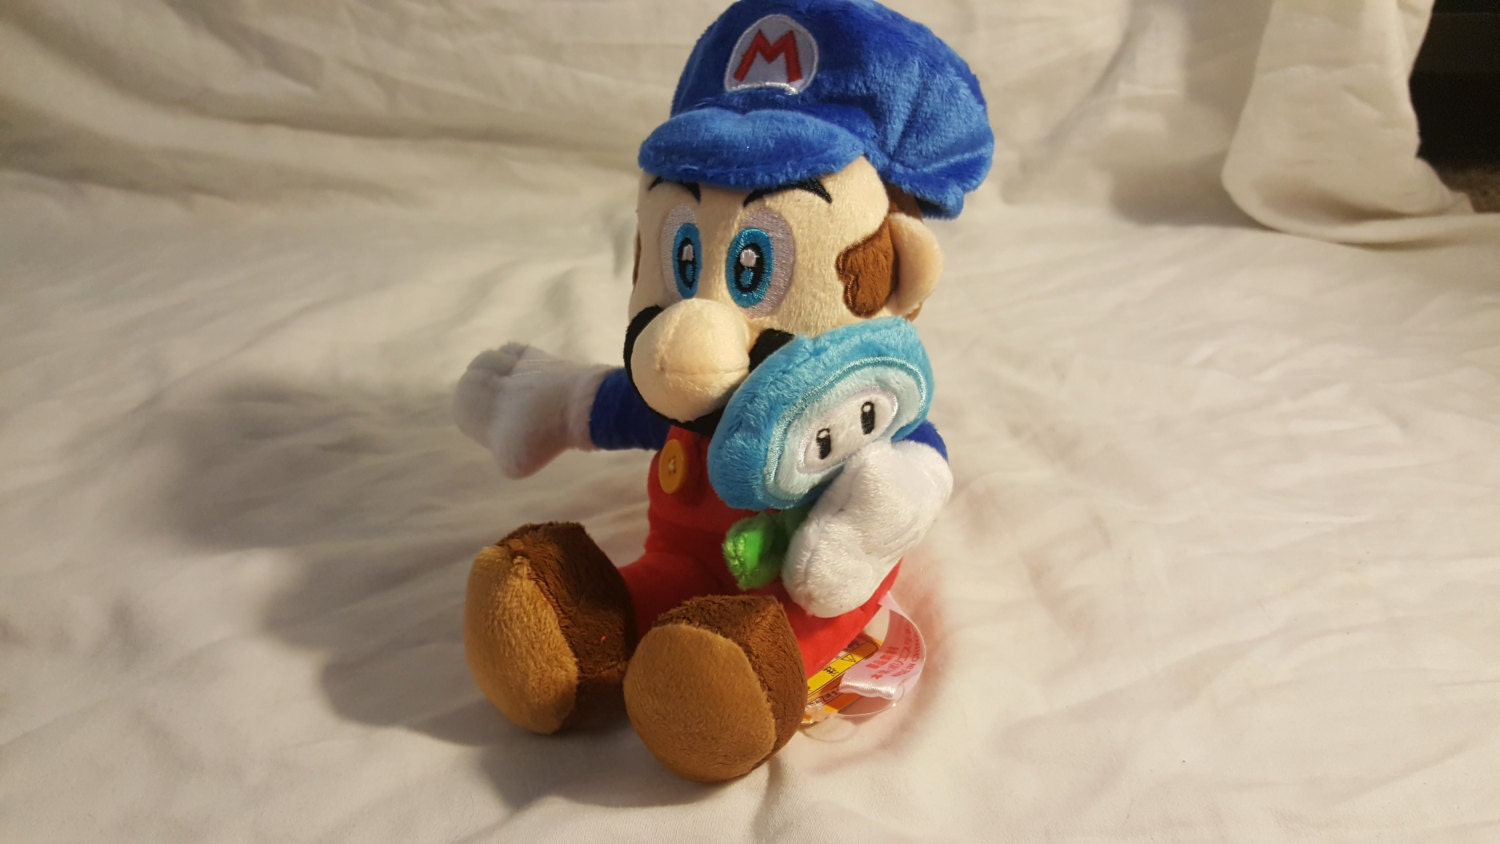 ice mario plush - photo #7